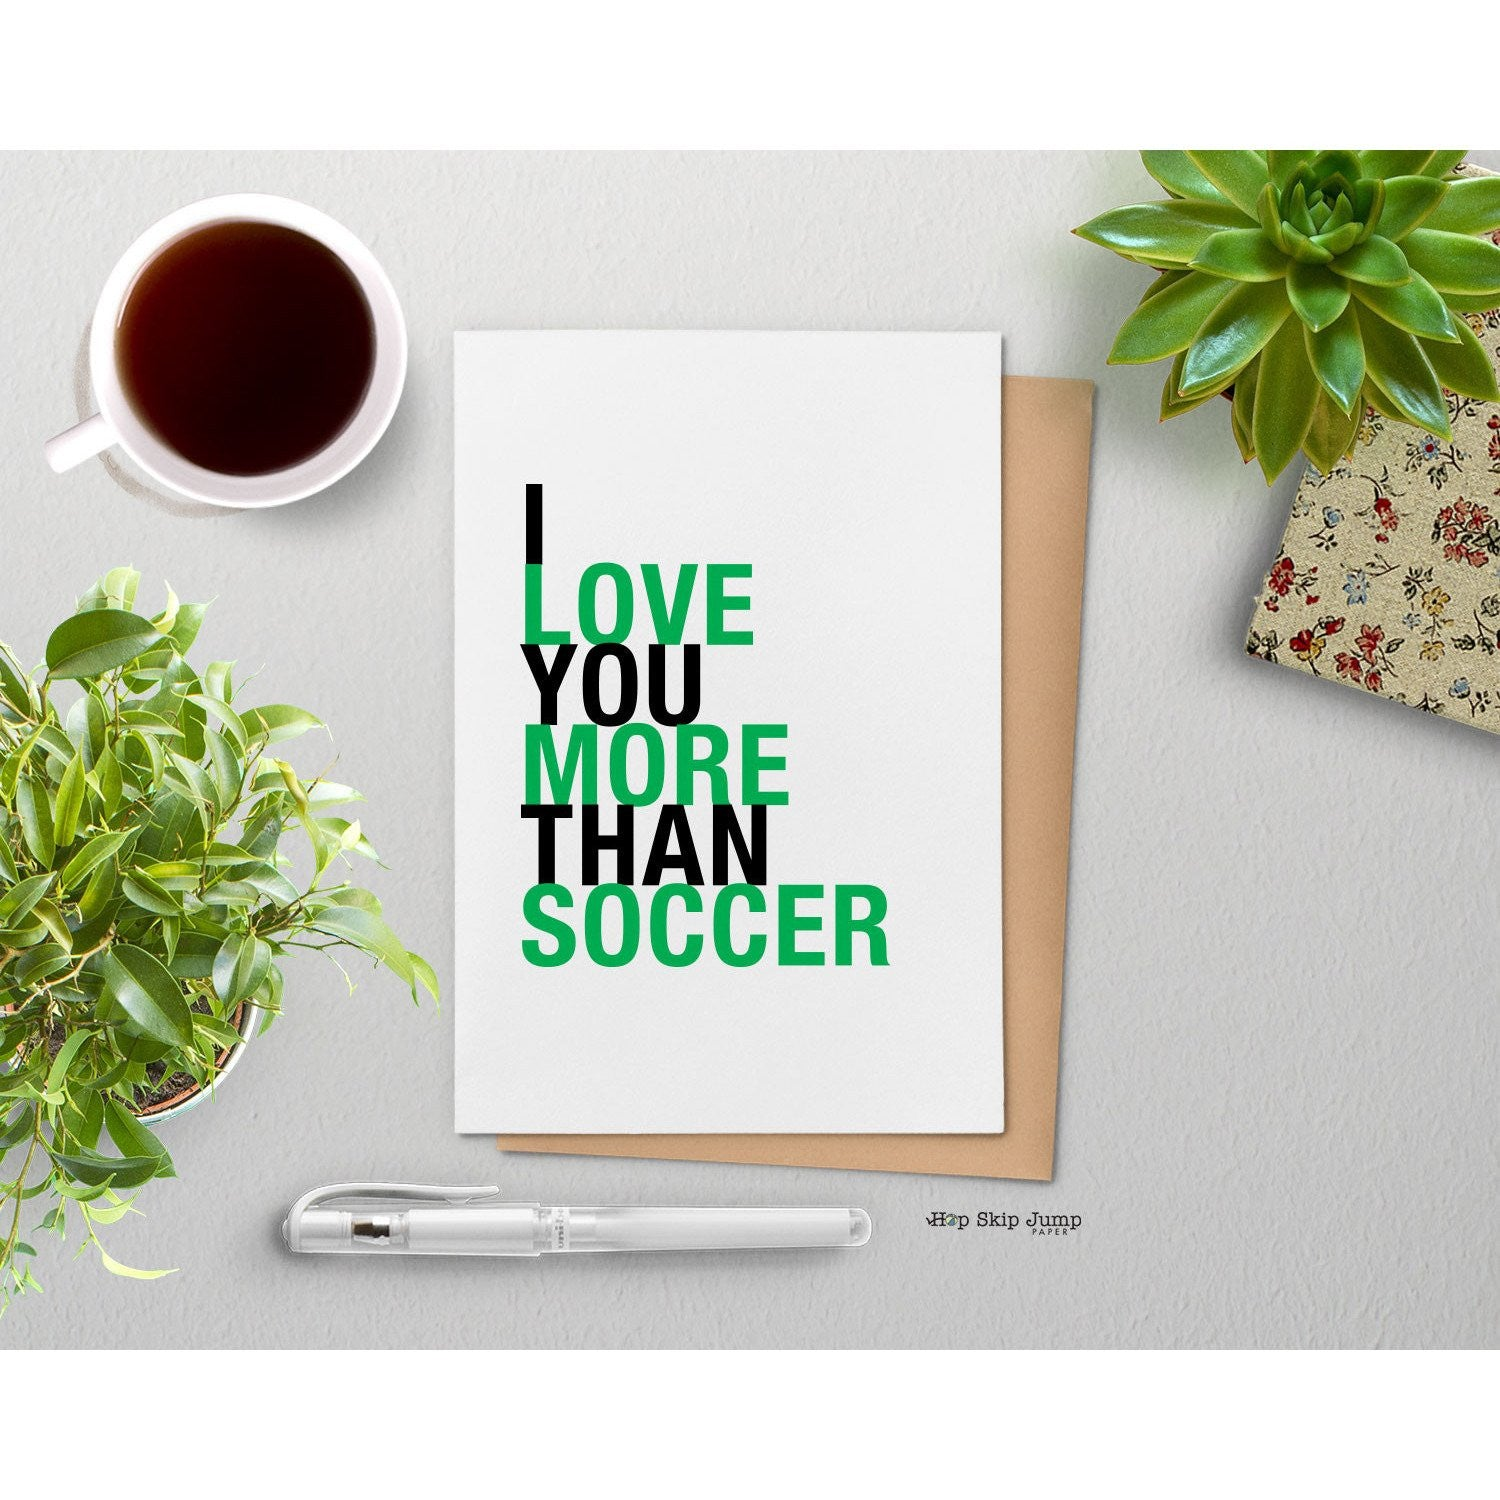 I Love You More Than Soccer greeting card  - Shop Online